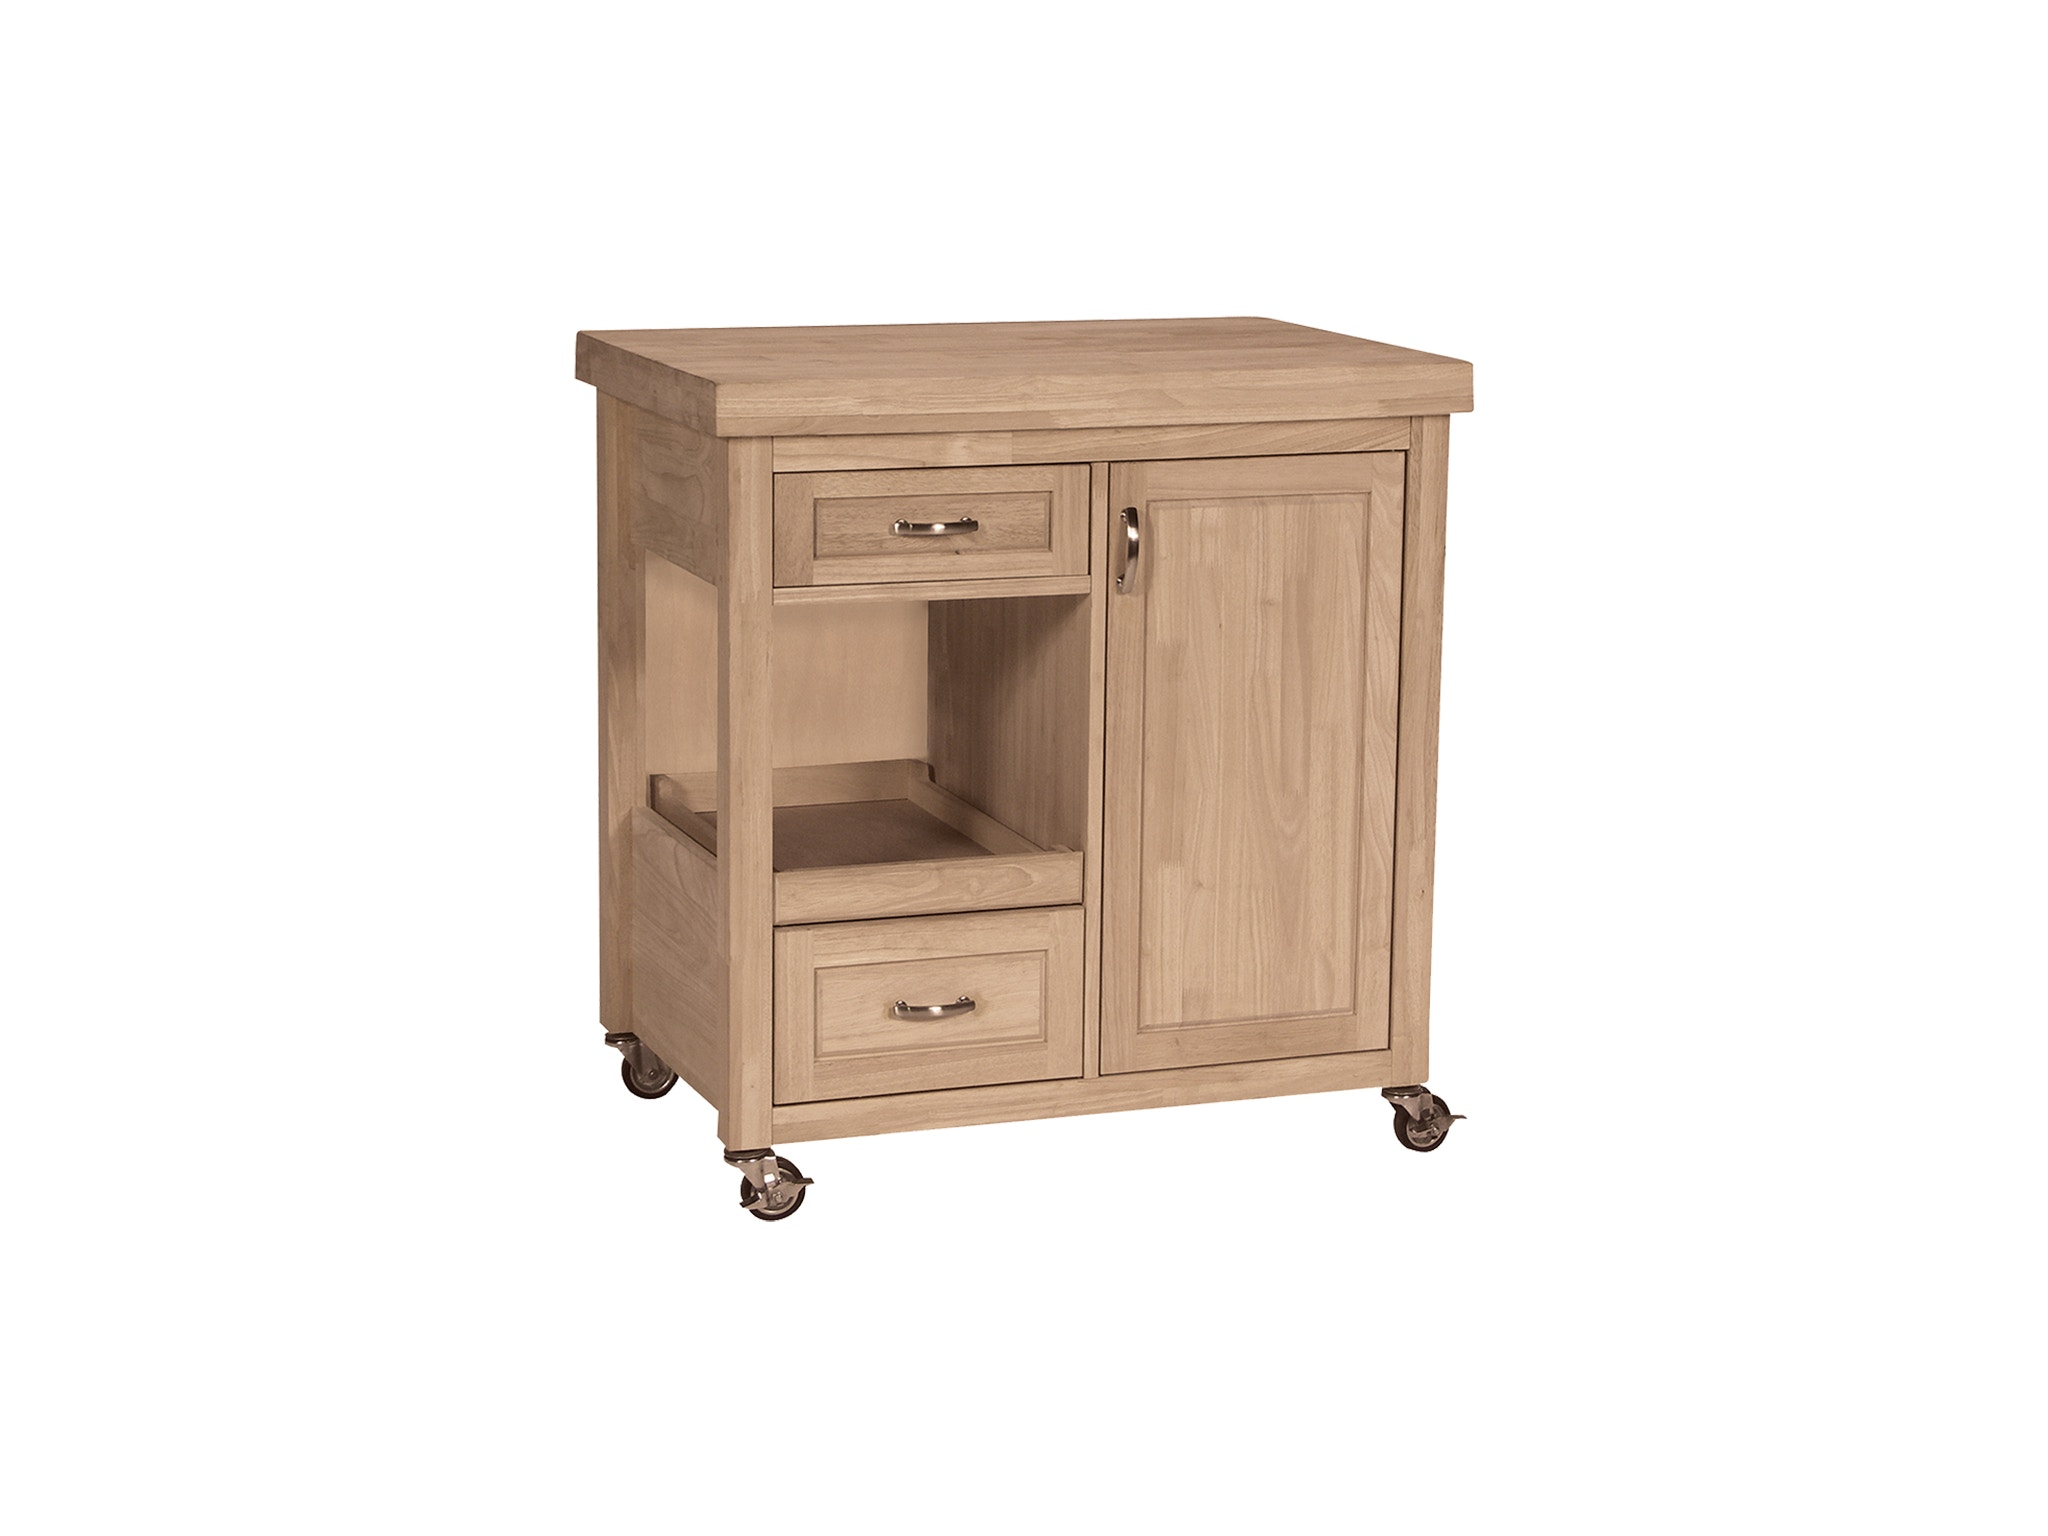 John Thomas Kitchen Castored Kitchen Work Center<br><br>One pull out shelf